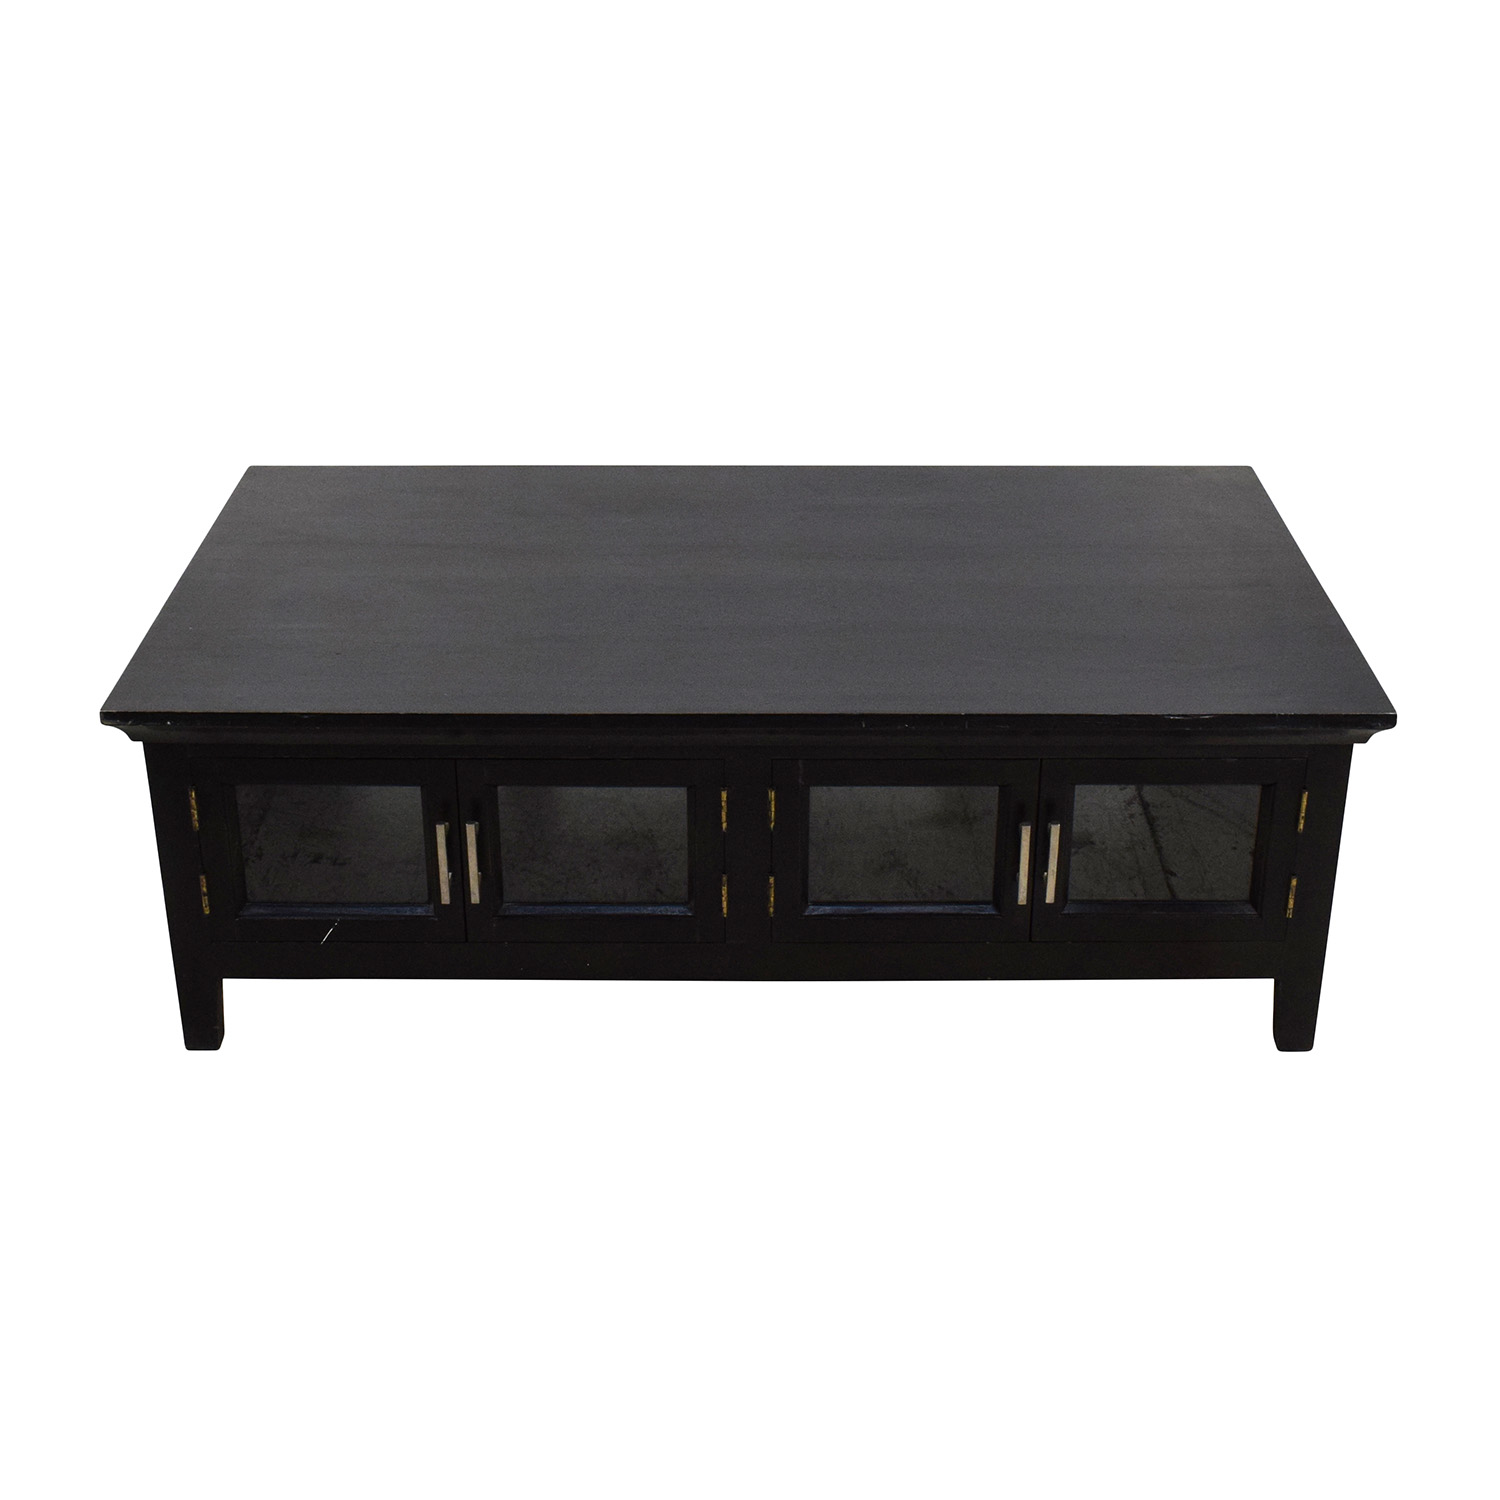 off  black wooden storage coffee table  tables - black wooden storage coffee table black wooden storage coffee tablediscount